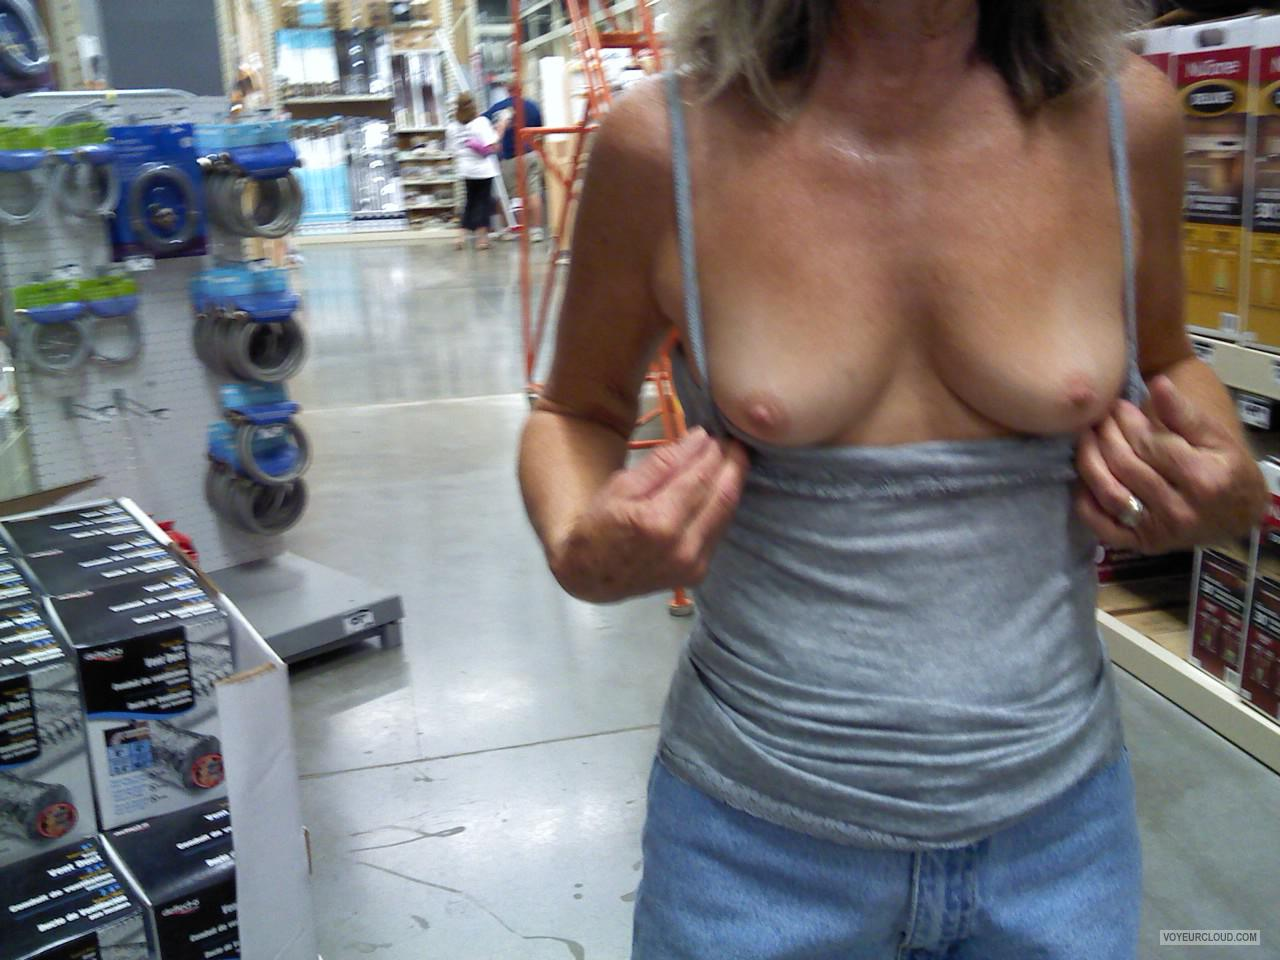 Tit Flash: Wife's Tanlined Small Tits - Judy from United States